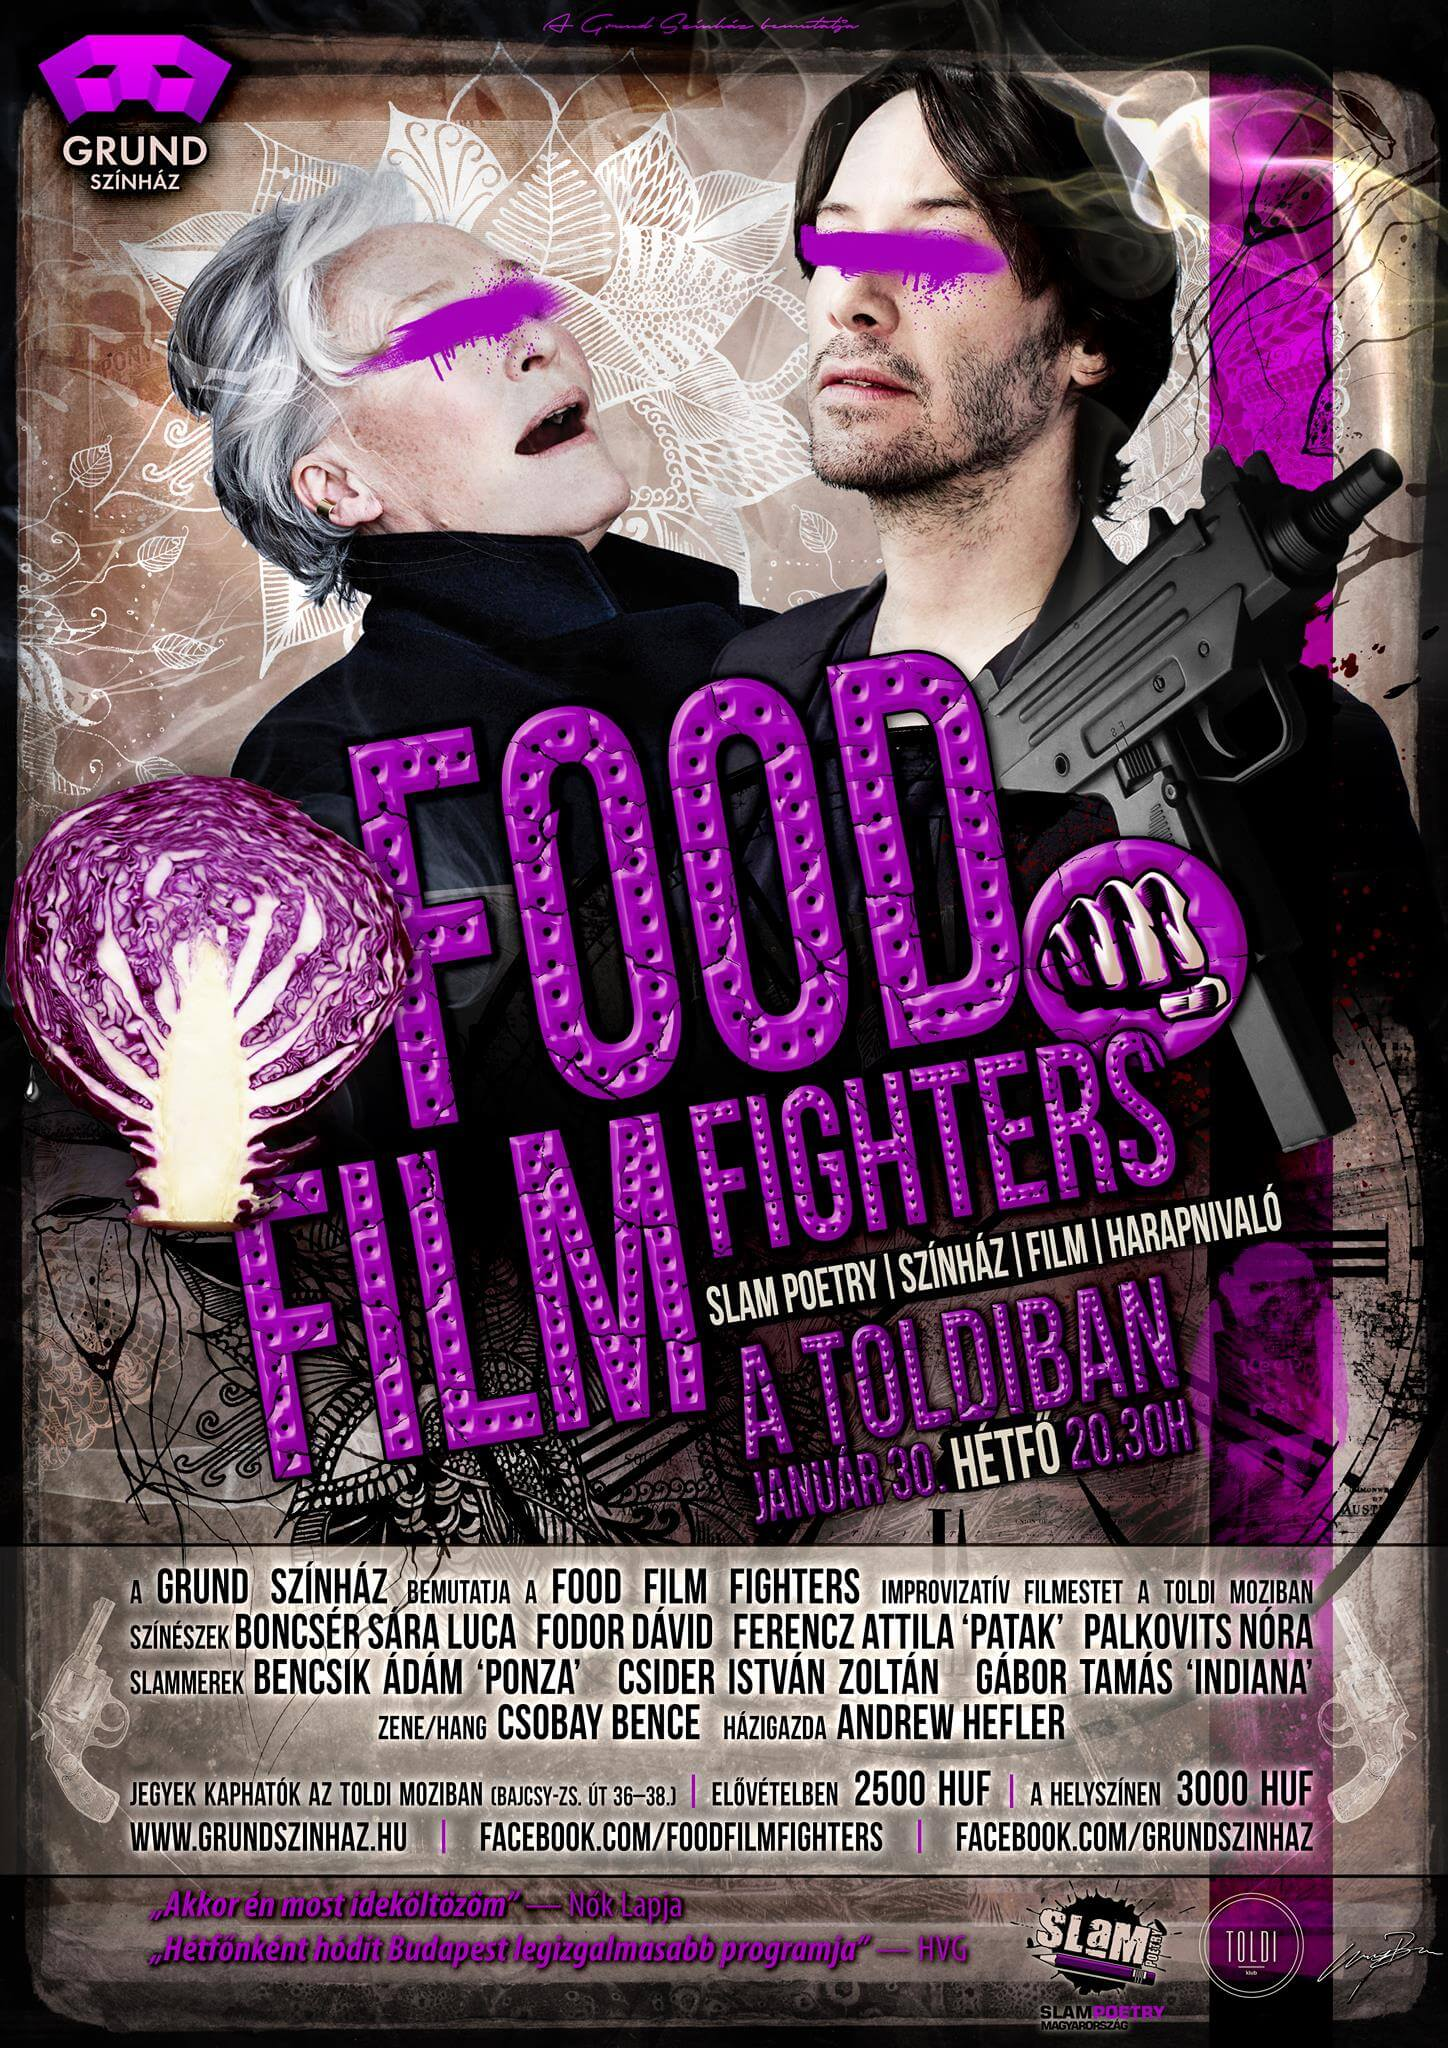 39. fOOD fILM fIGHTERS